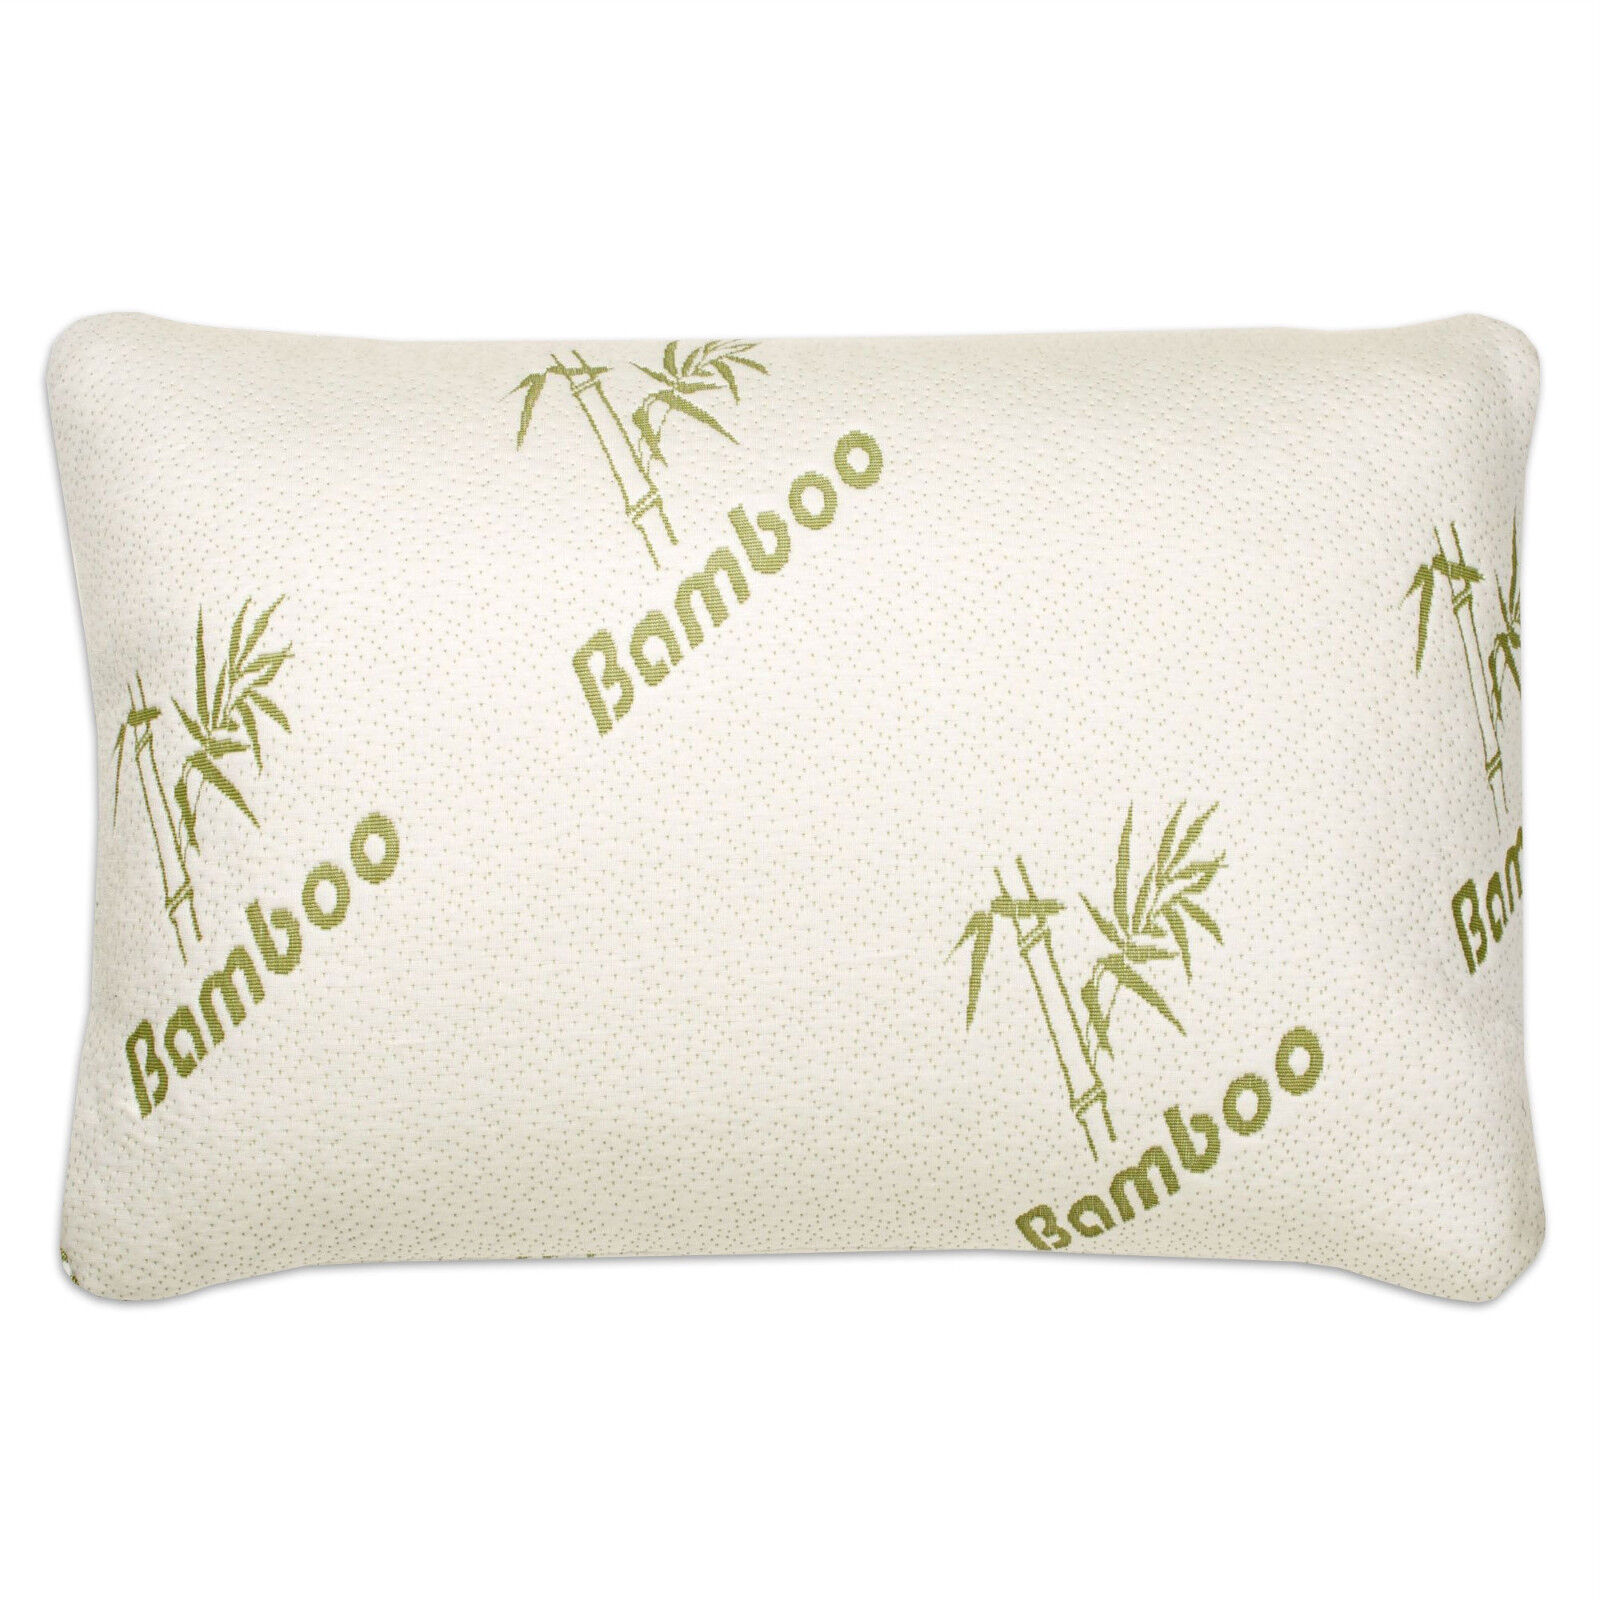 the-original-memory-foam-bamboo-pillow-with-removable-zippered-pillow-case